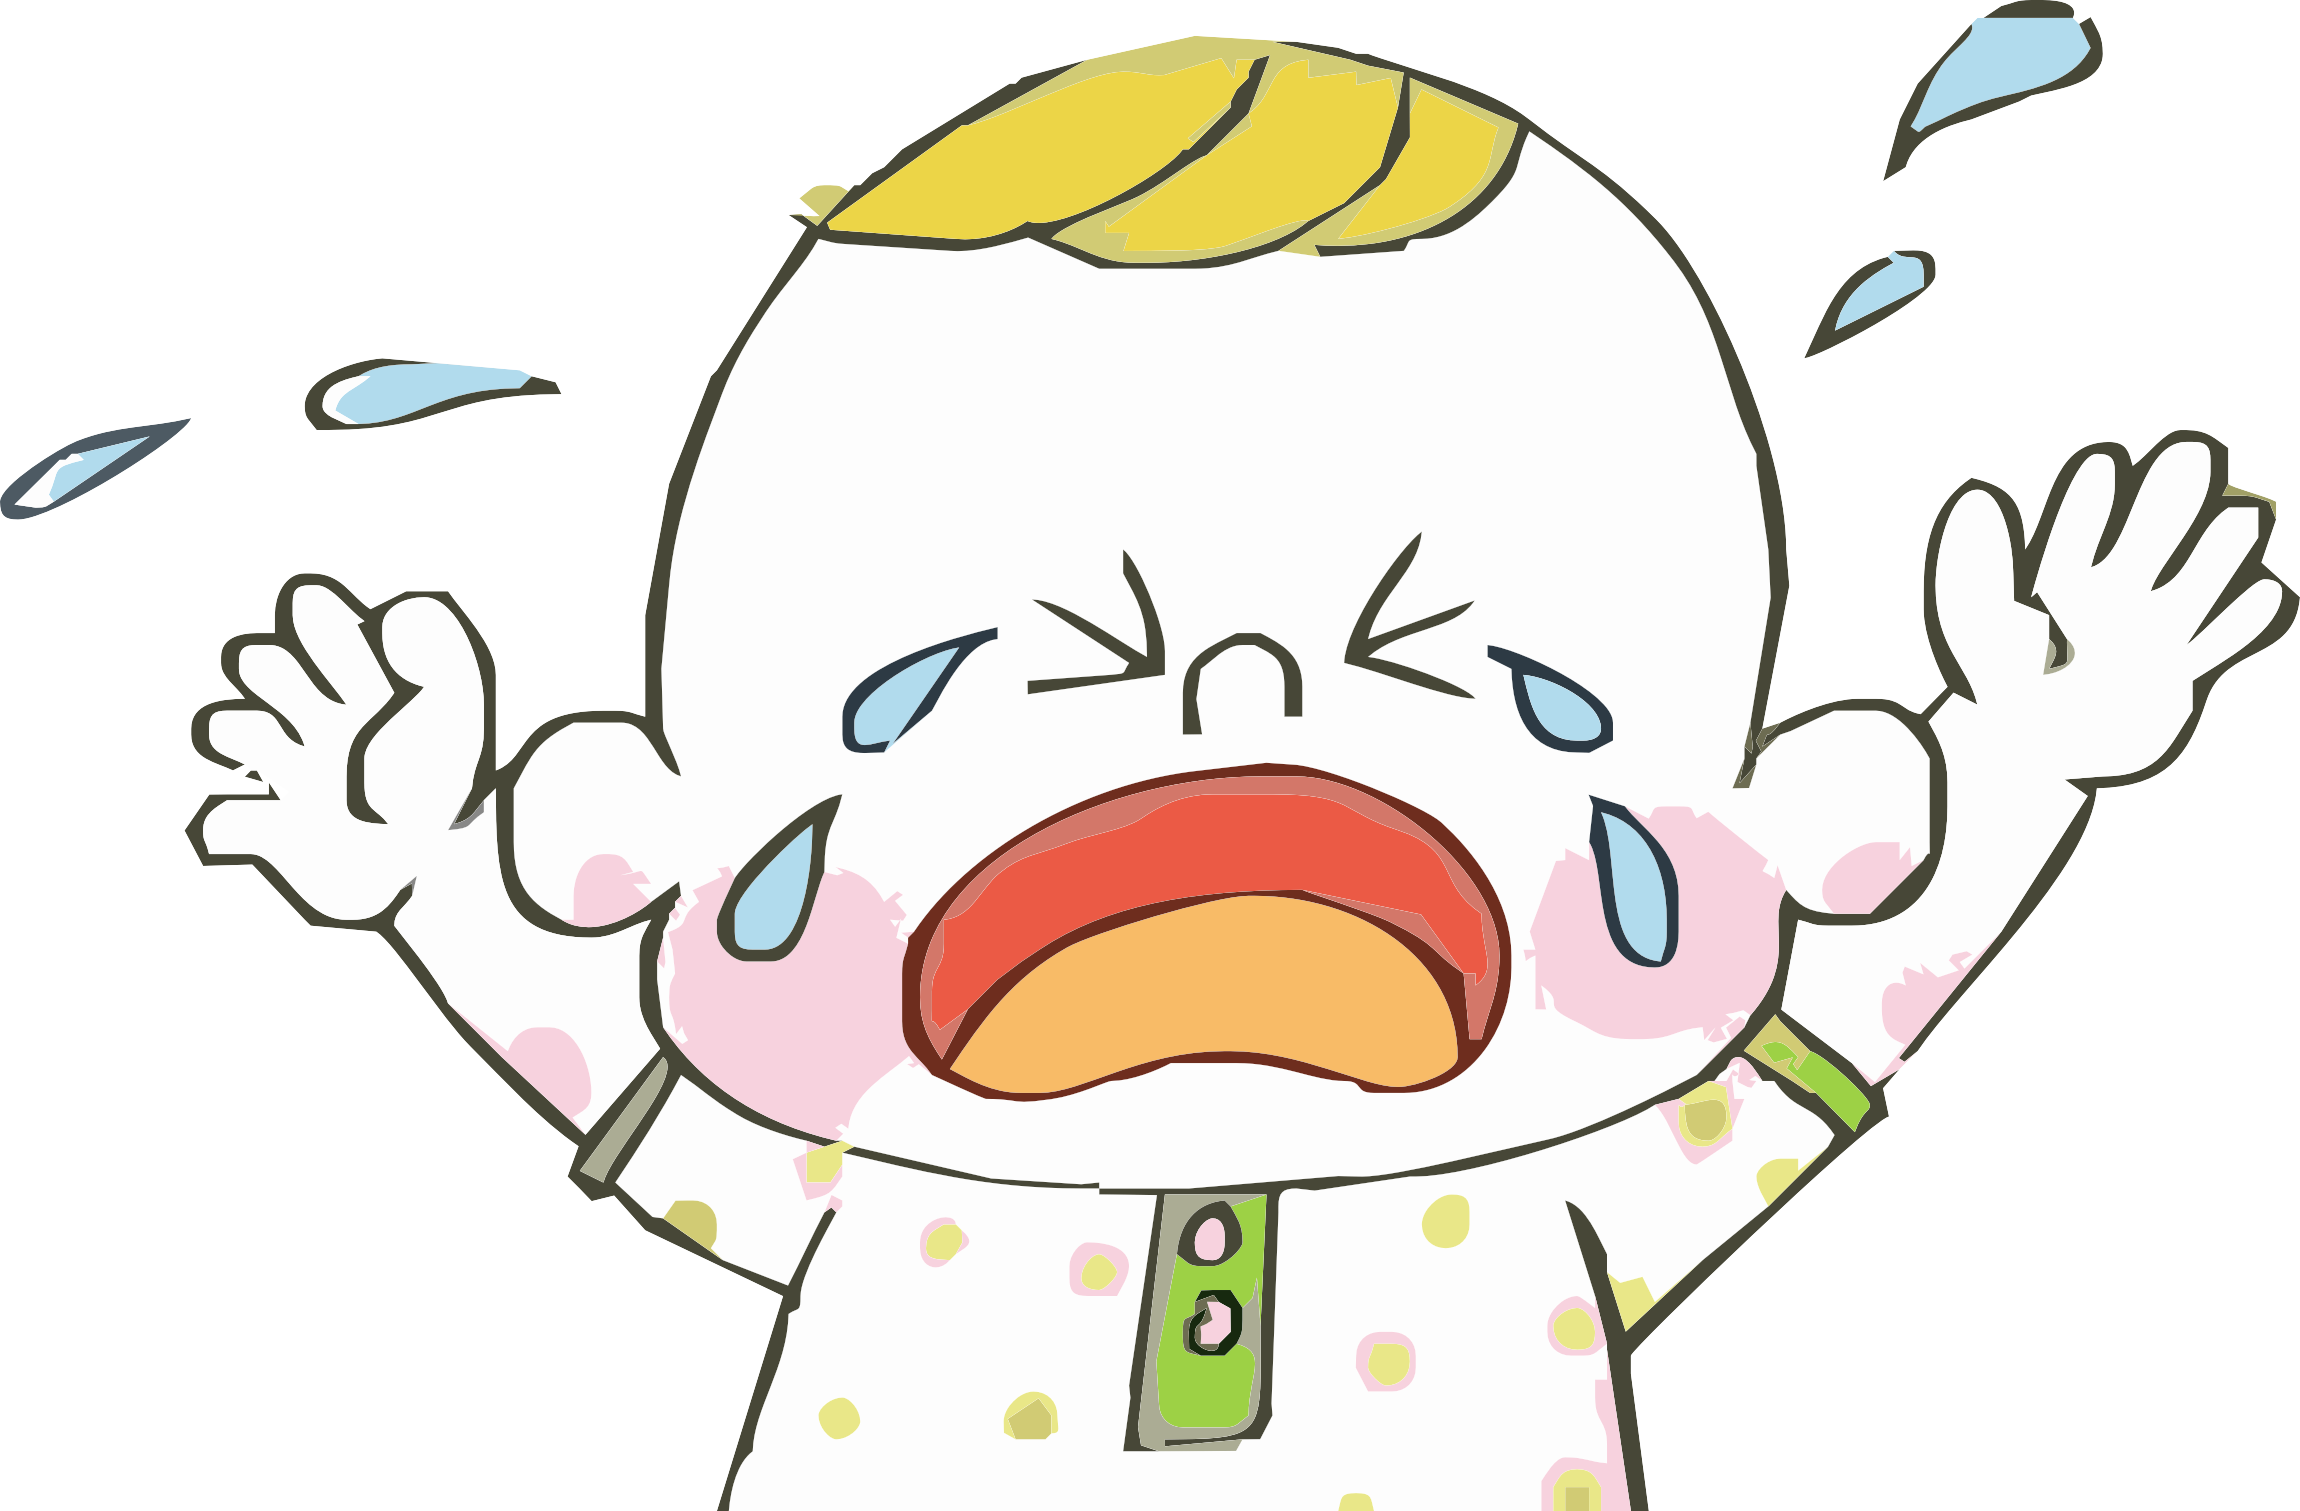 Screaming child vector png. Crying infant cartoon tears